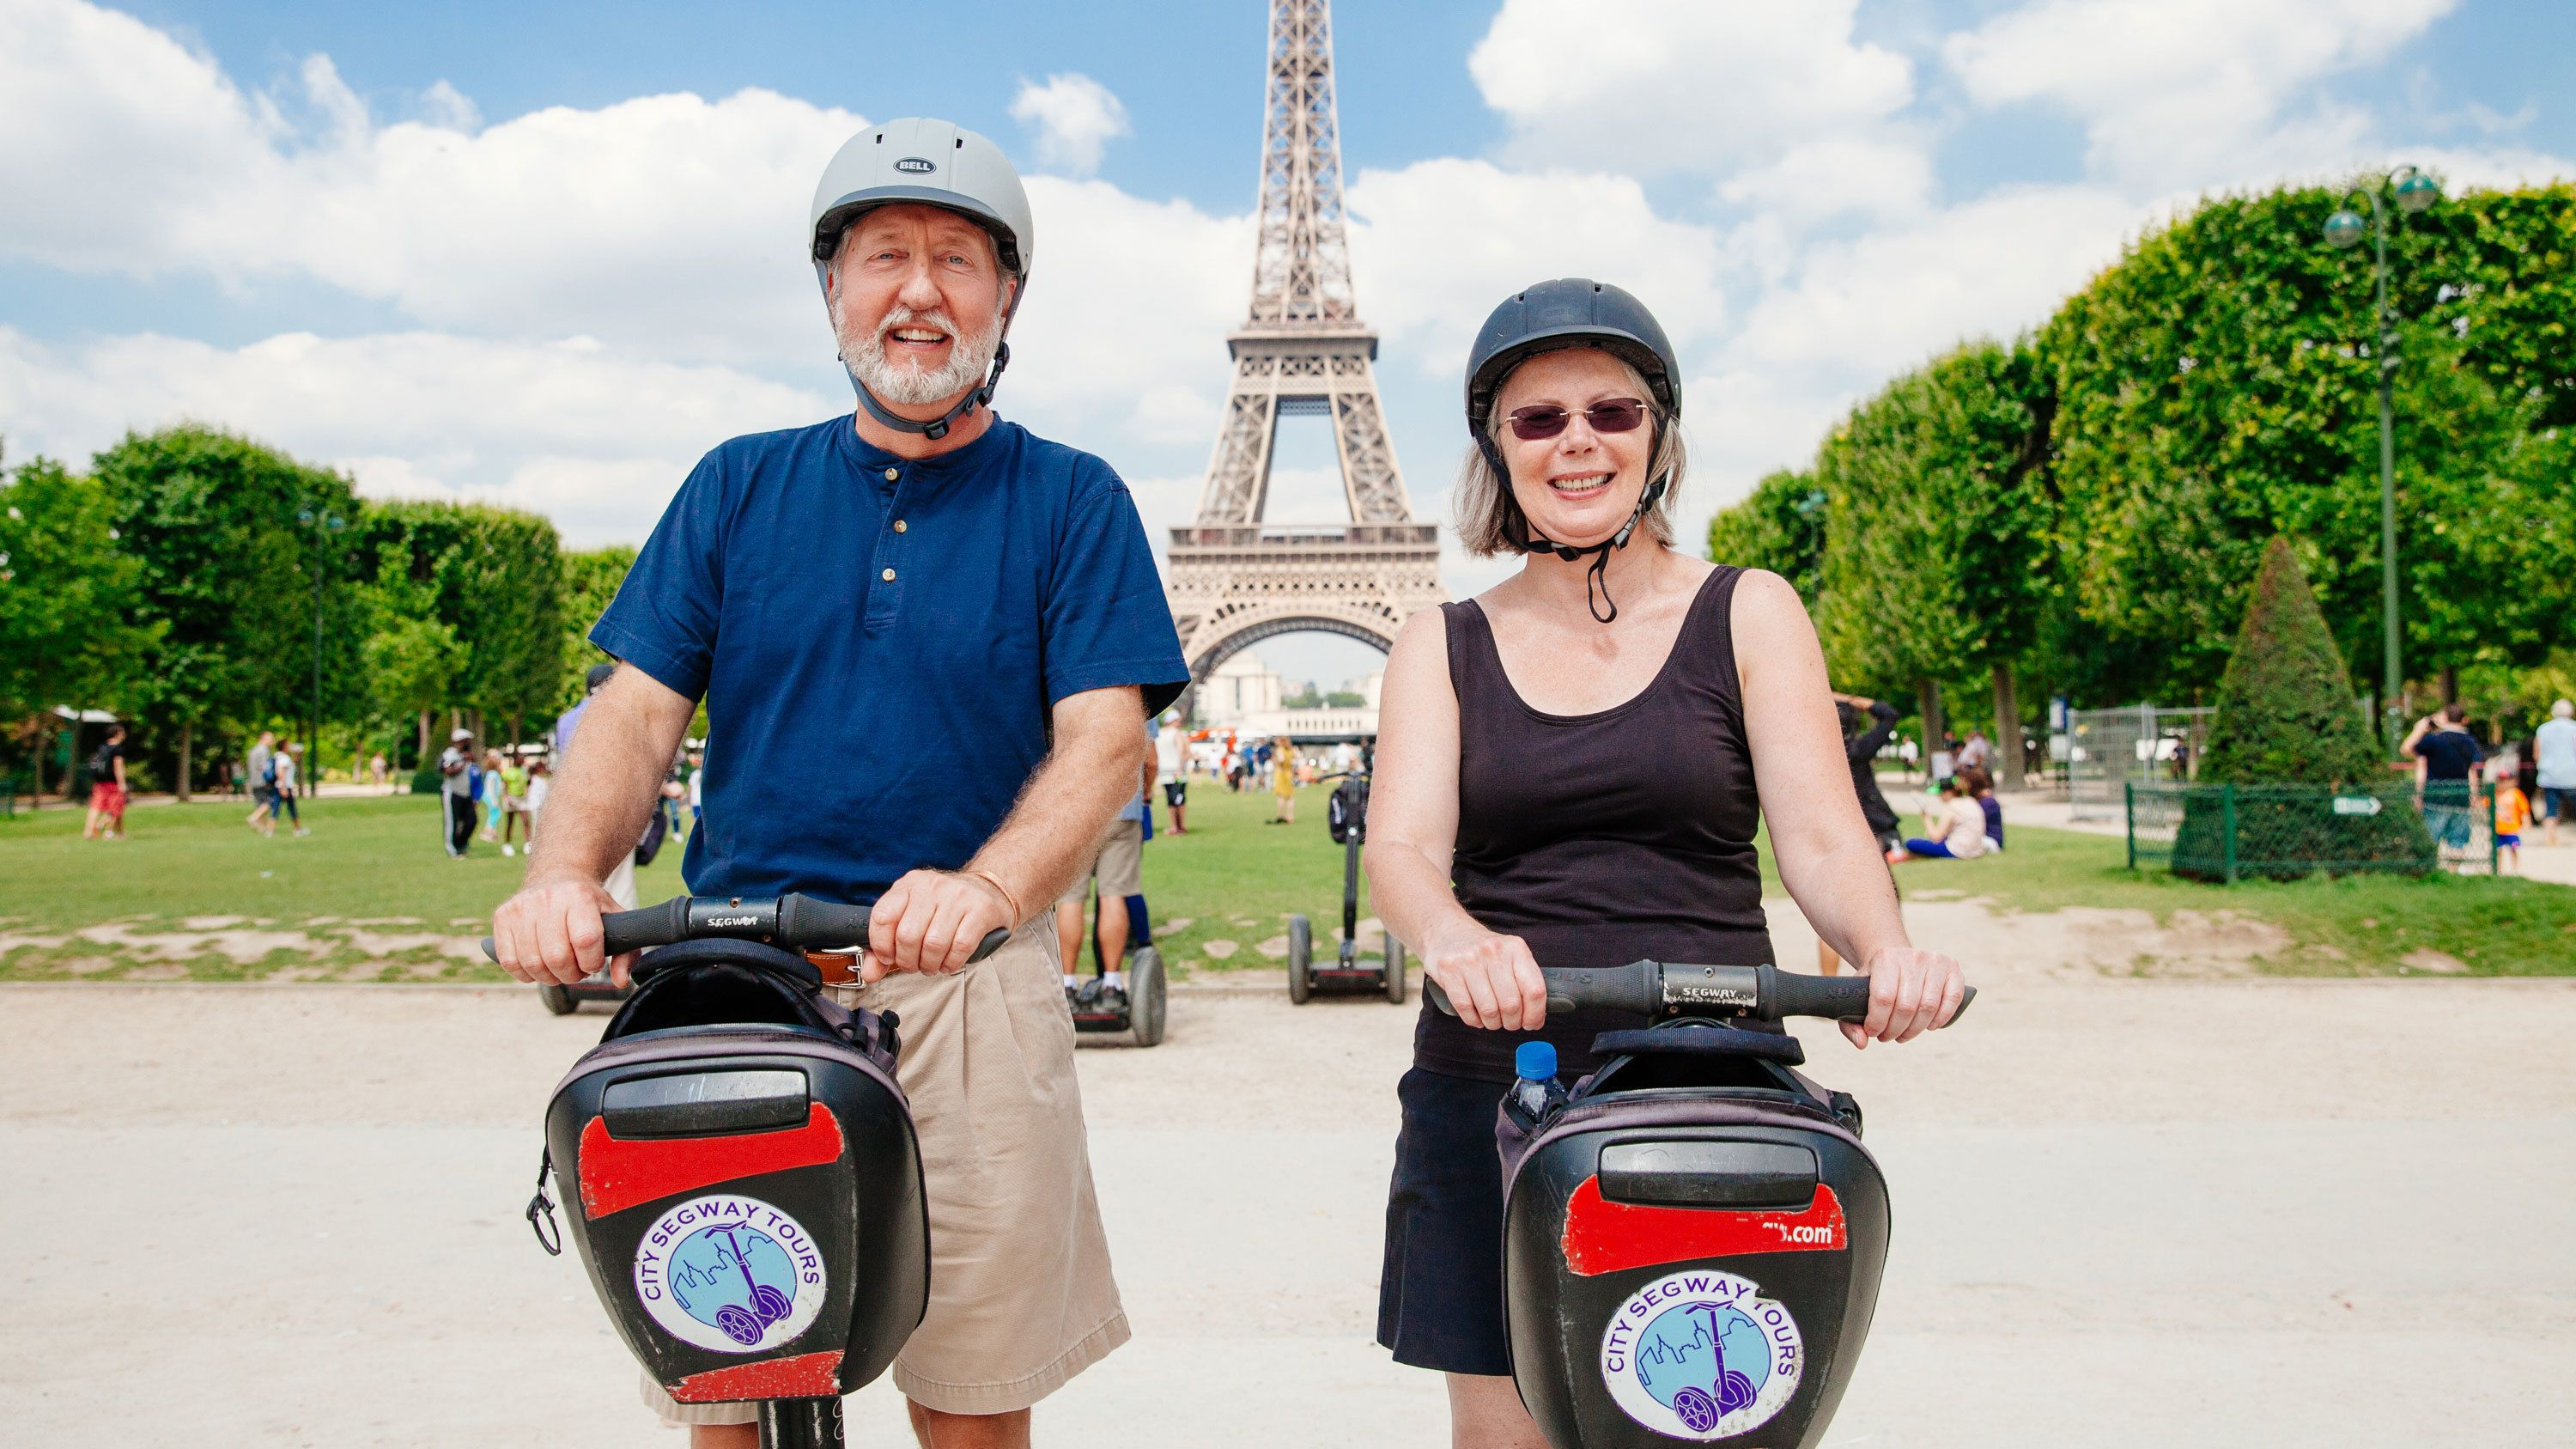 Two segway riders infront of the Eiffel tower